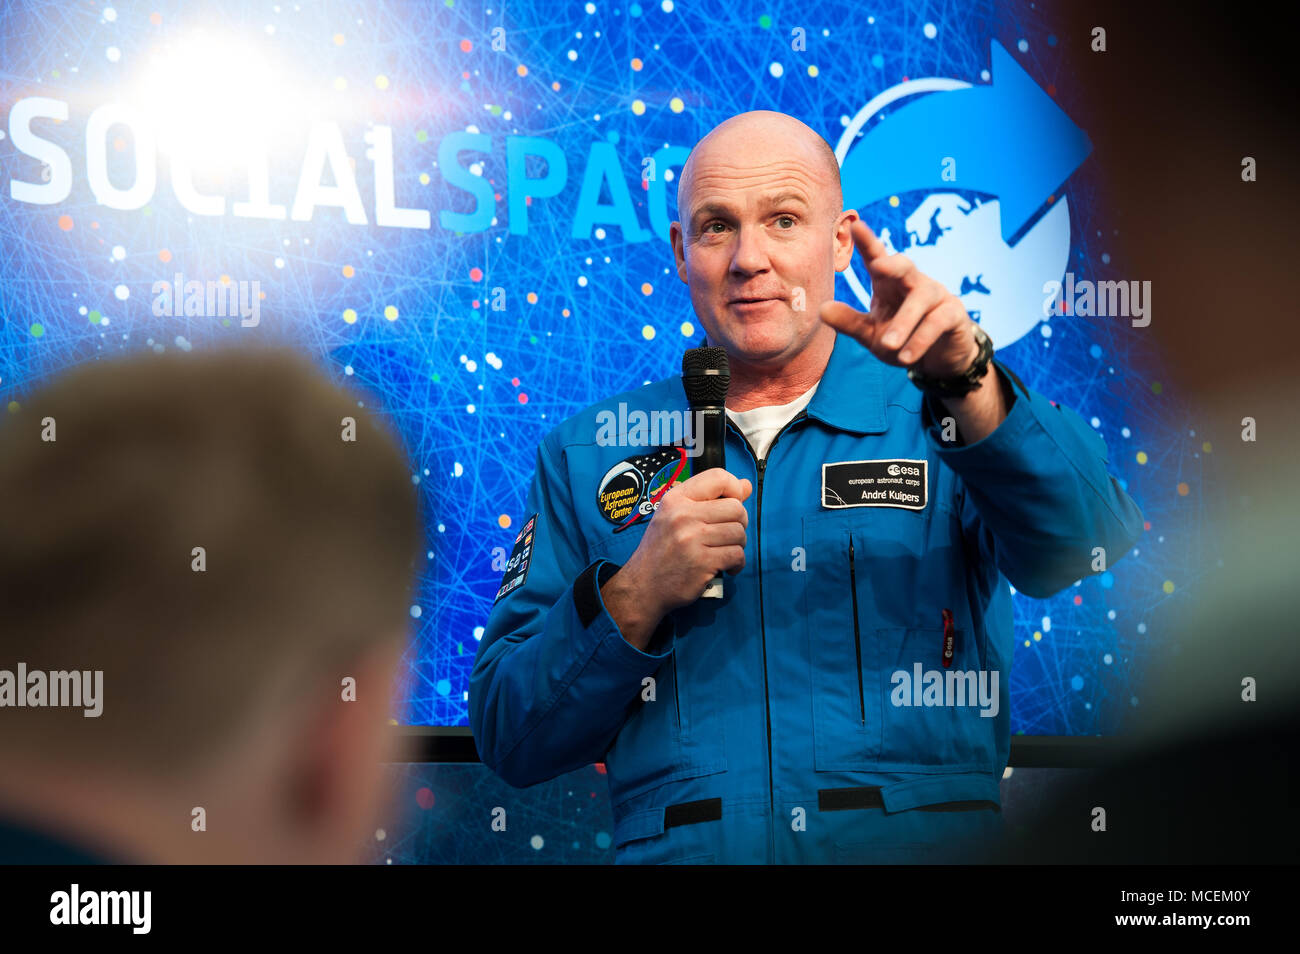 Dutch ESA Astronaut André Kuipers talking at an Event in Cologne - Stock Image